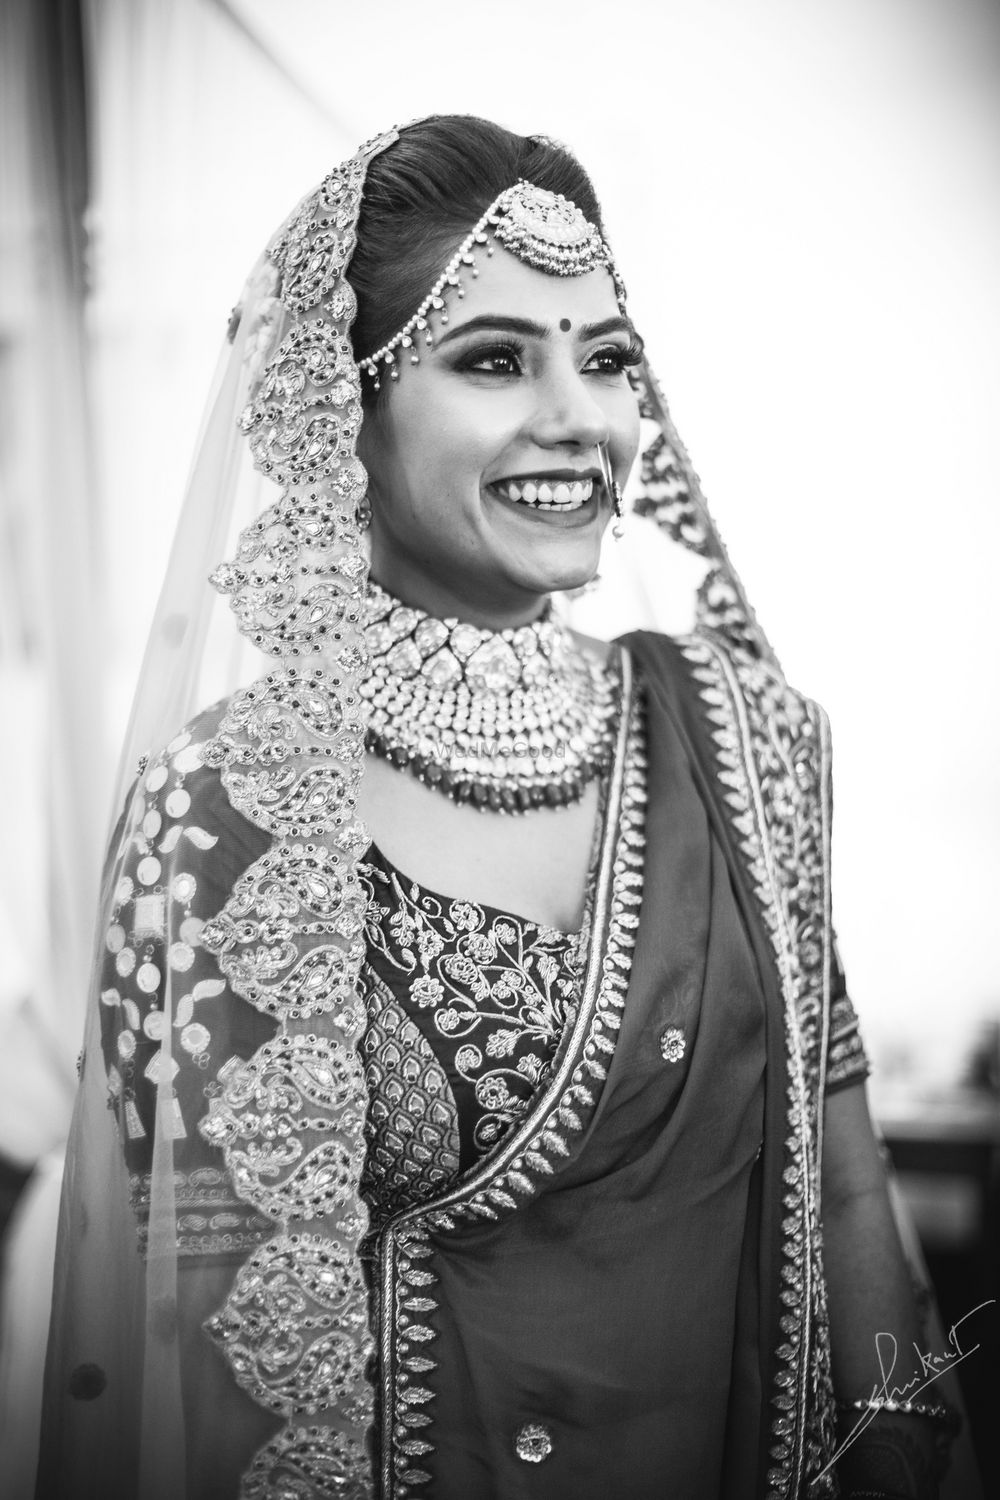 Photo From Ananya & Divas - By Pixel8 Photography